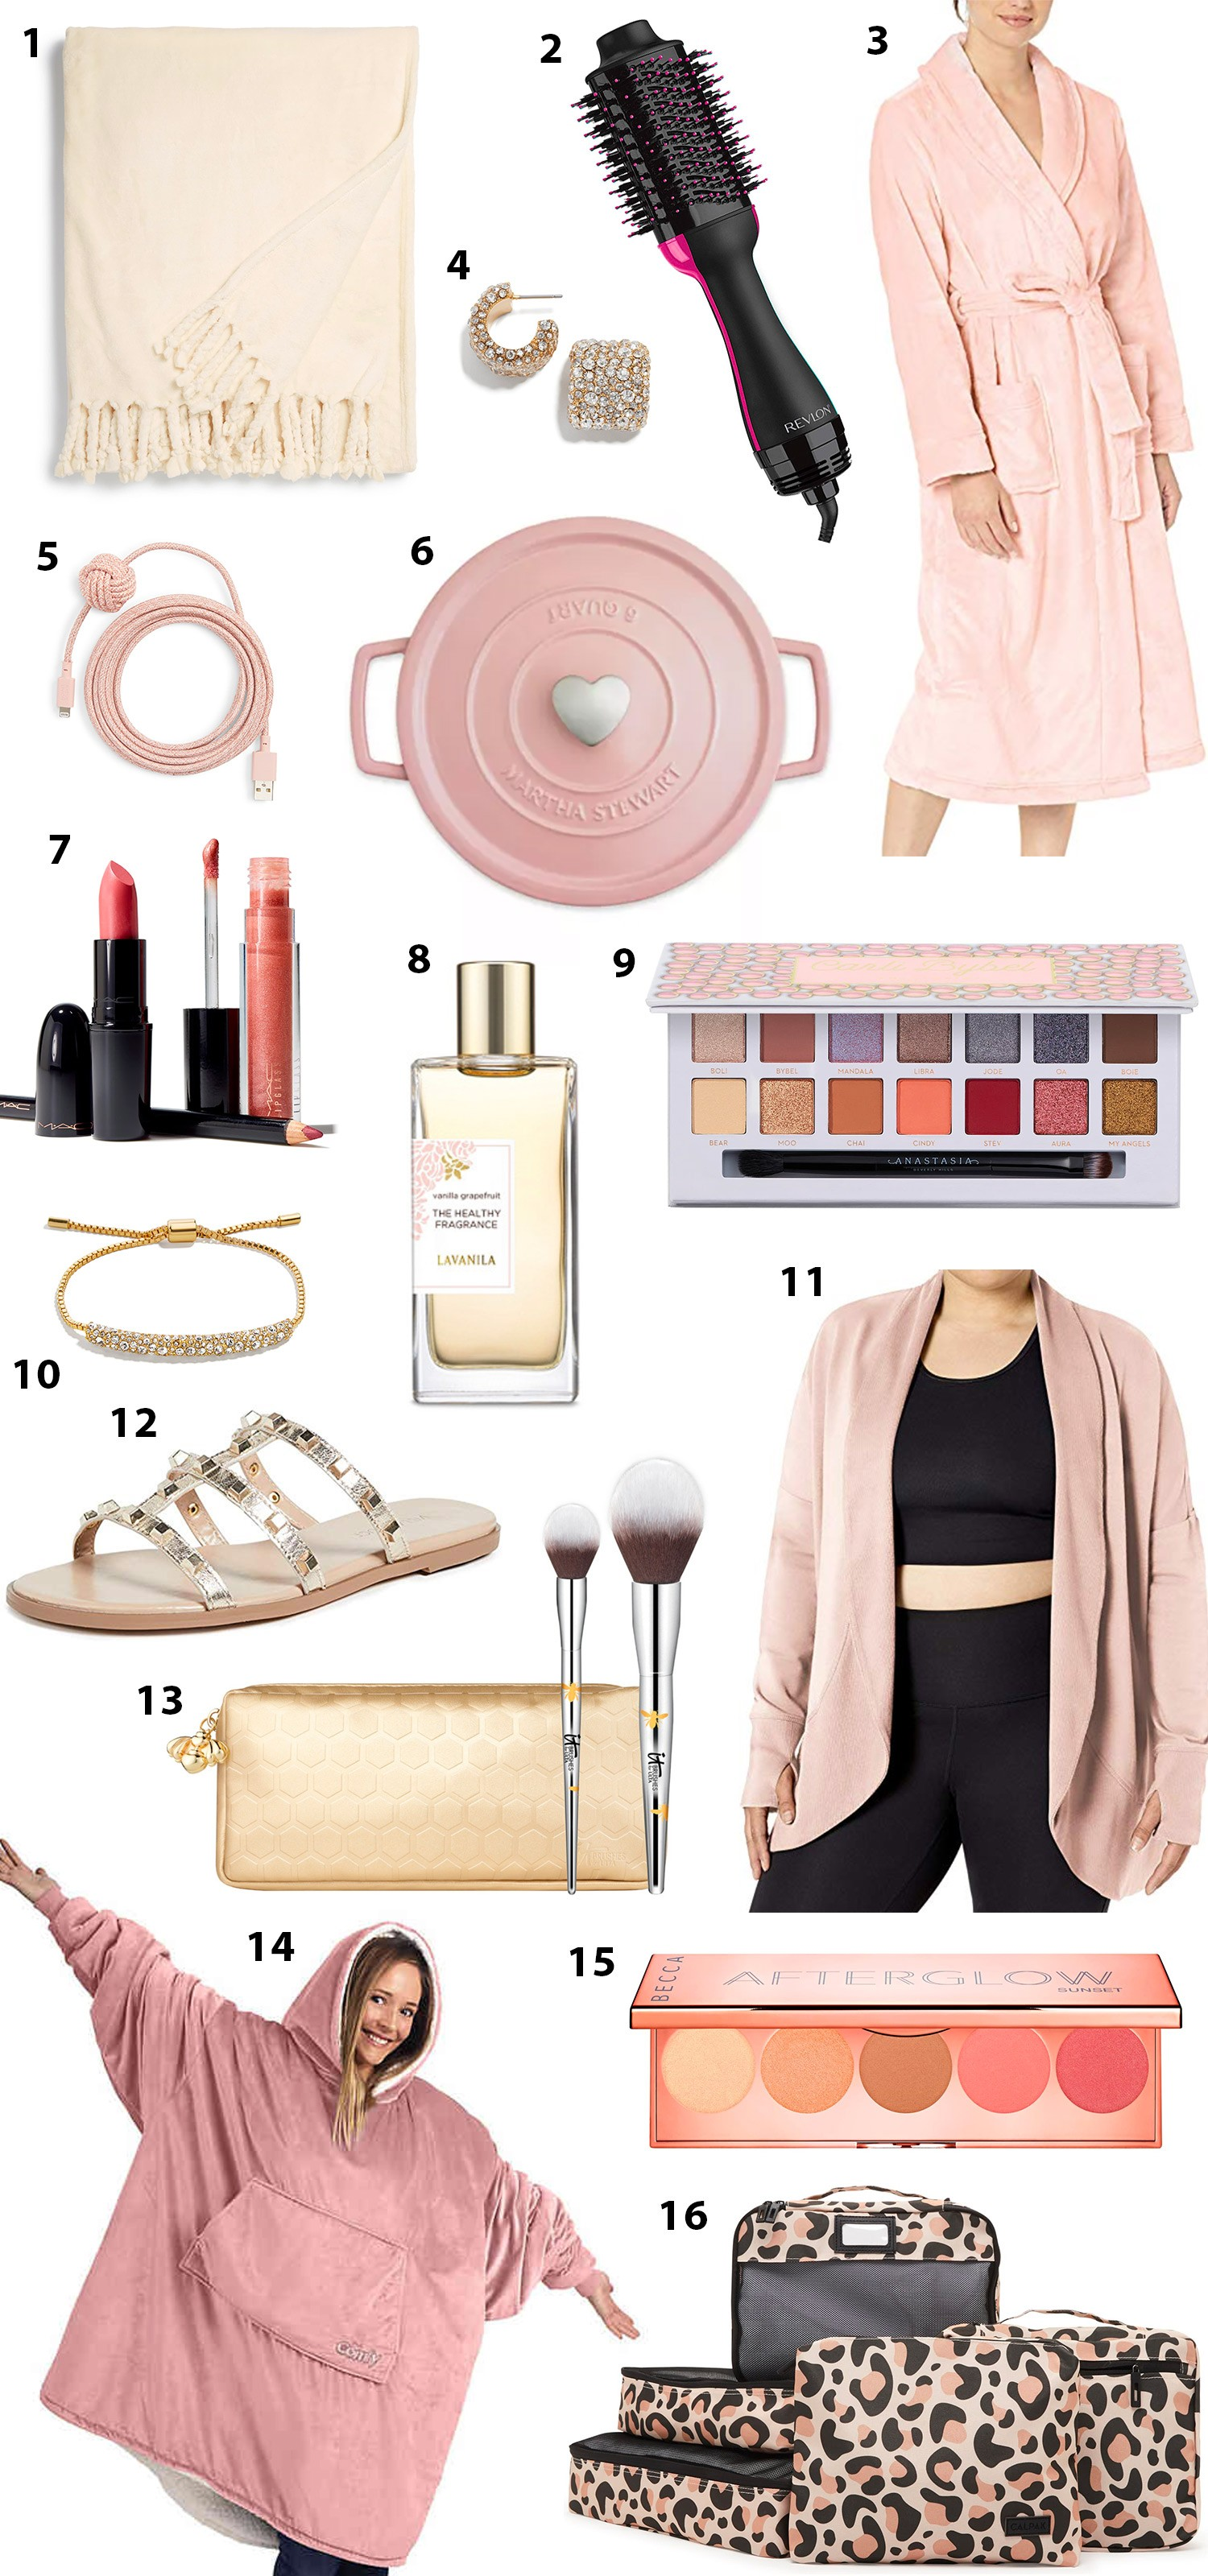 The Best Gifts For Women Under 50 Ashley Brooke Nicholas